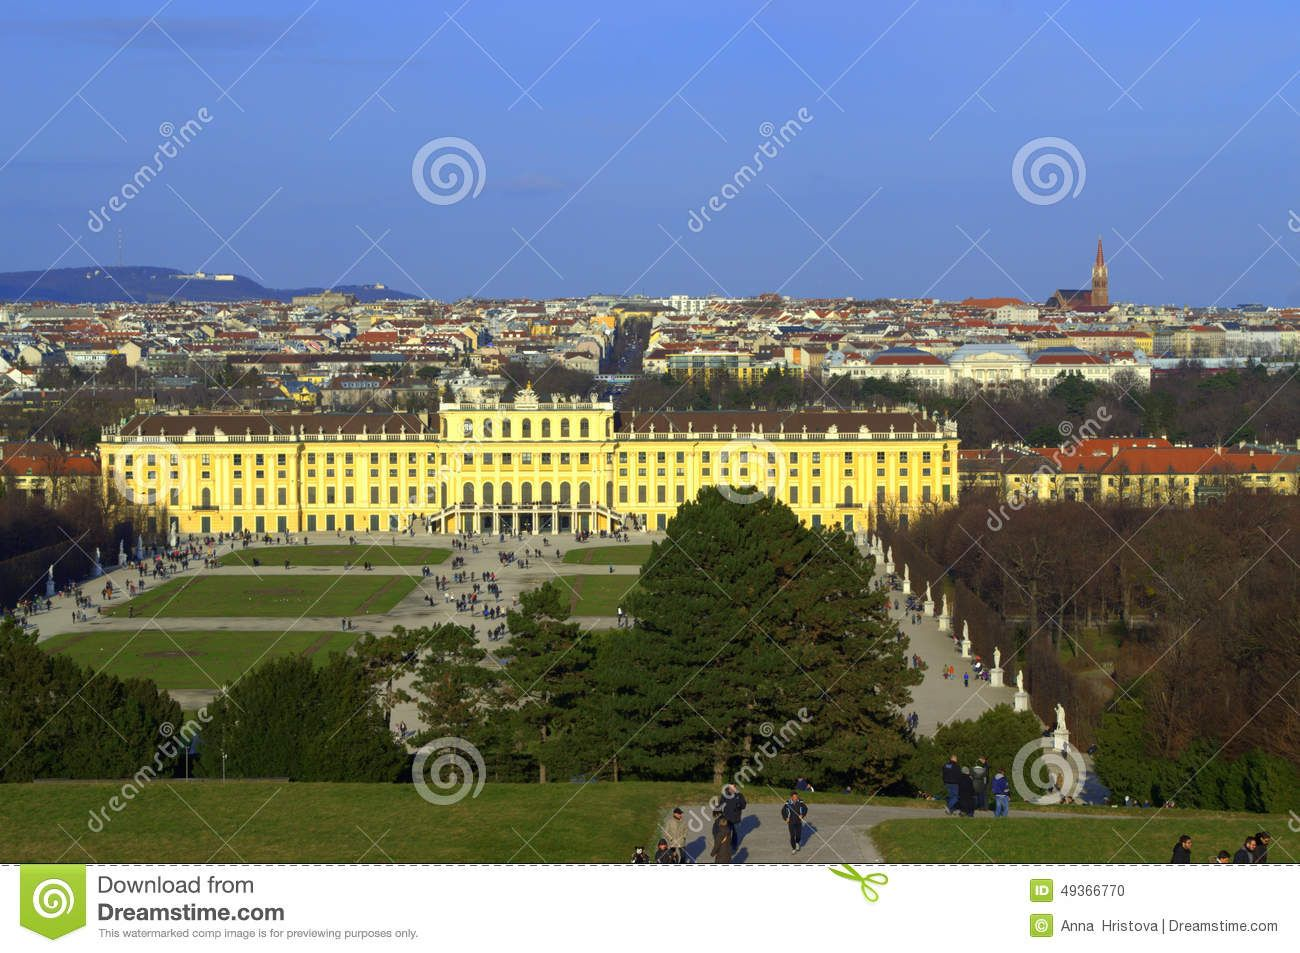 Beautiful scenic view and people sightseeing at bright  winter day  in Schonbrunn Palace garden and pond in Vienna, Austria